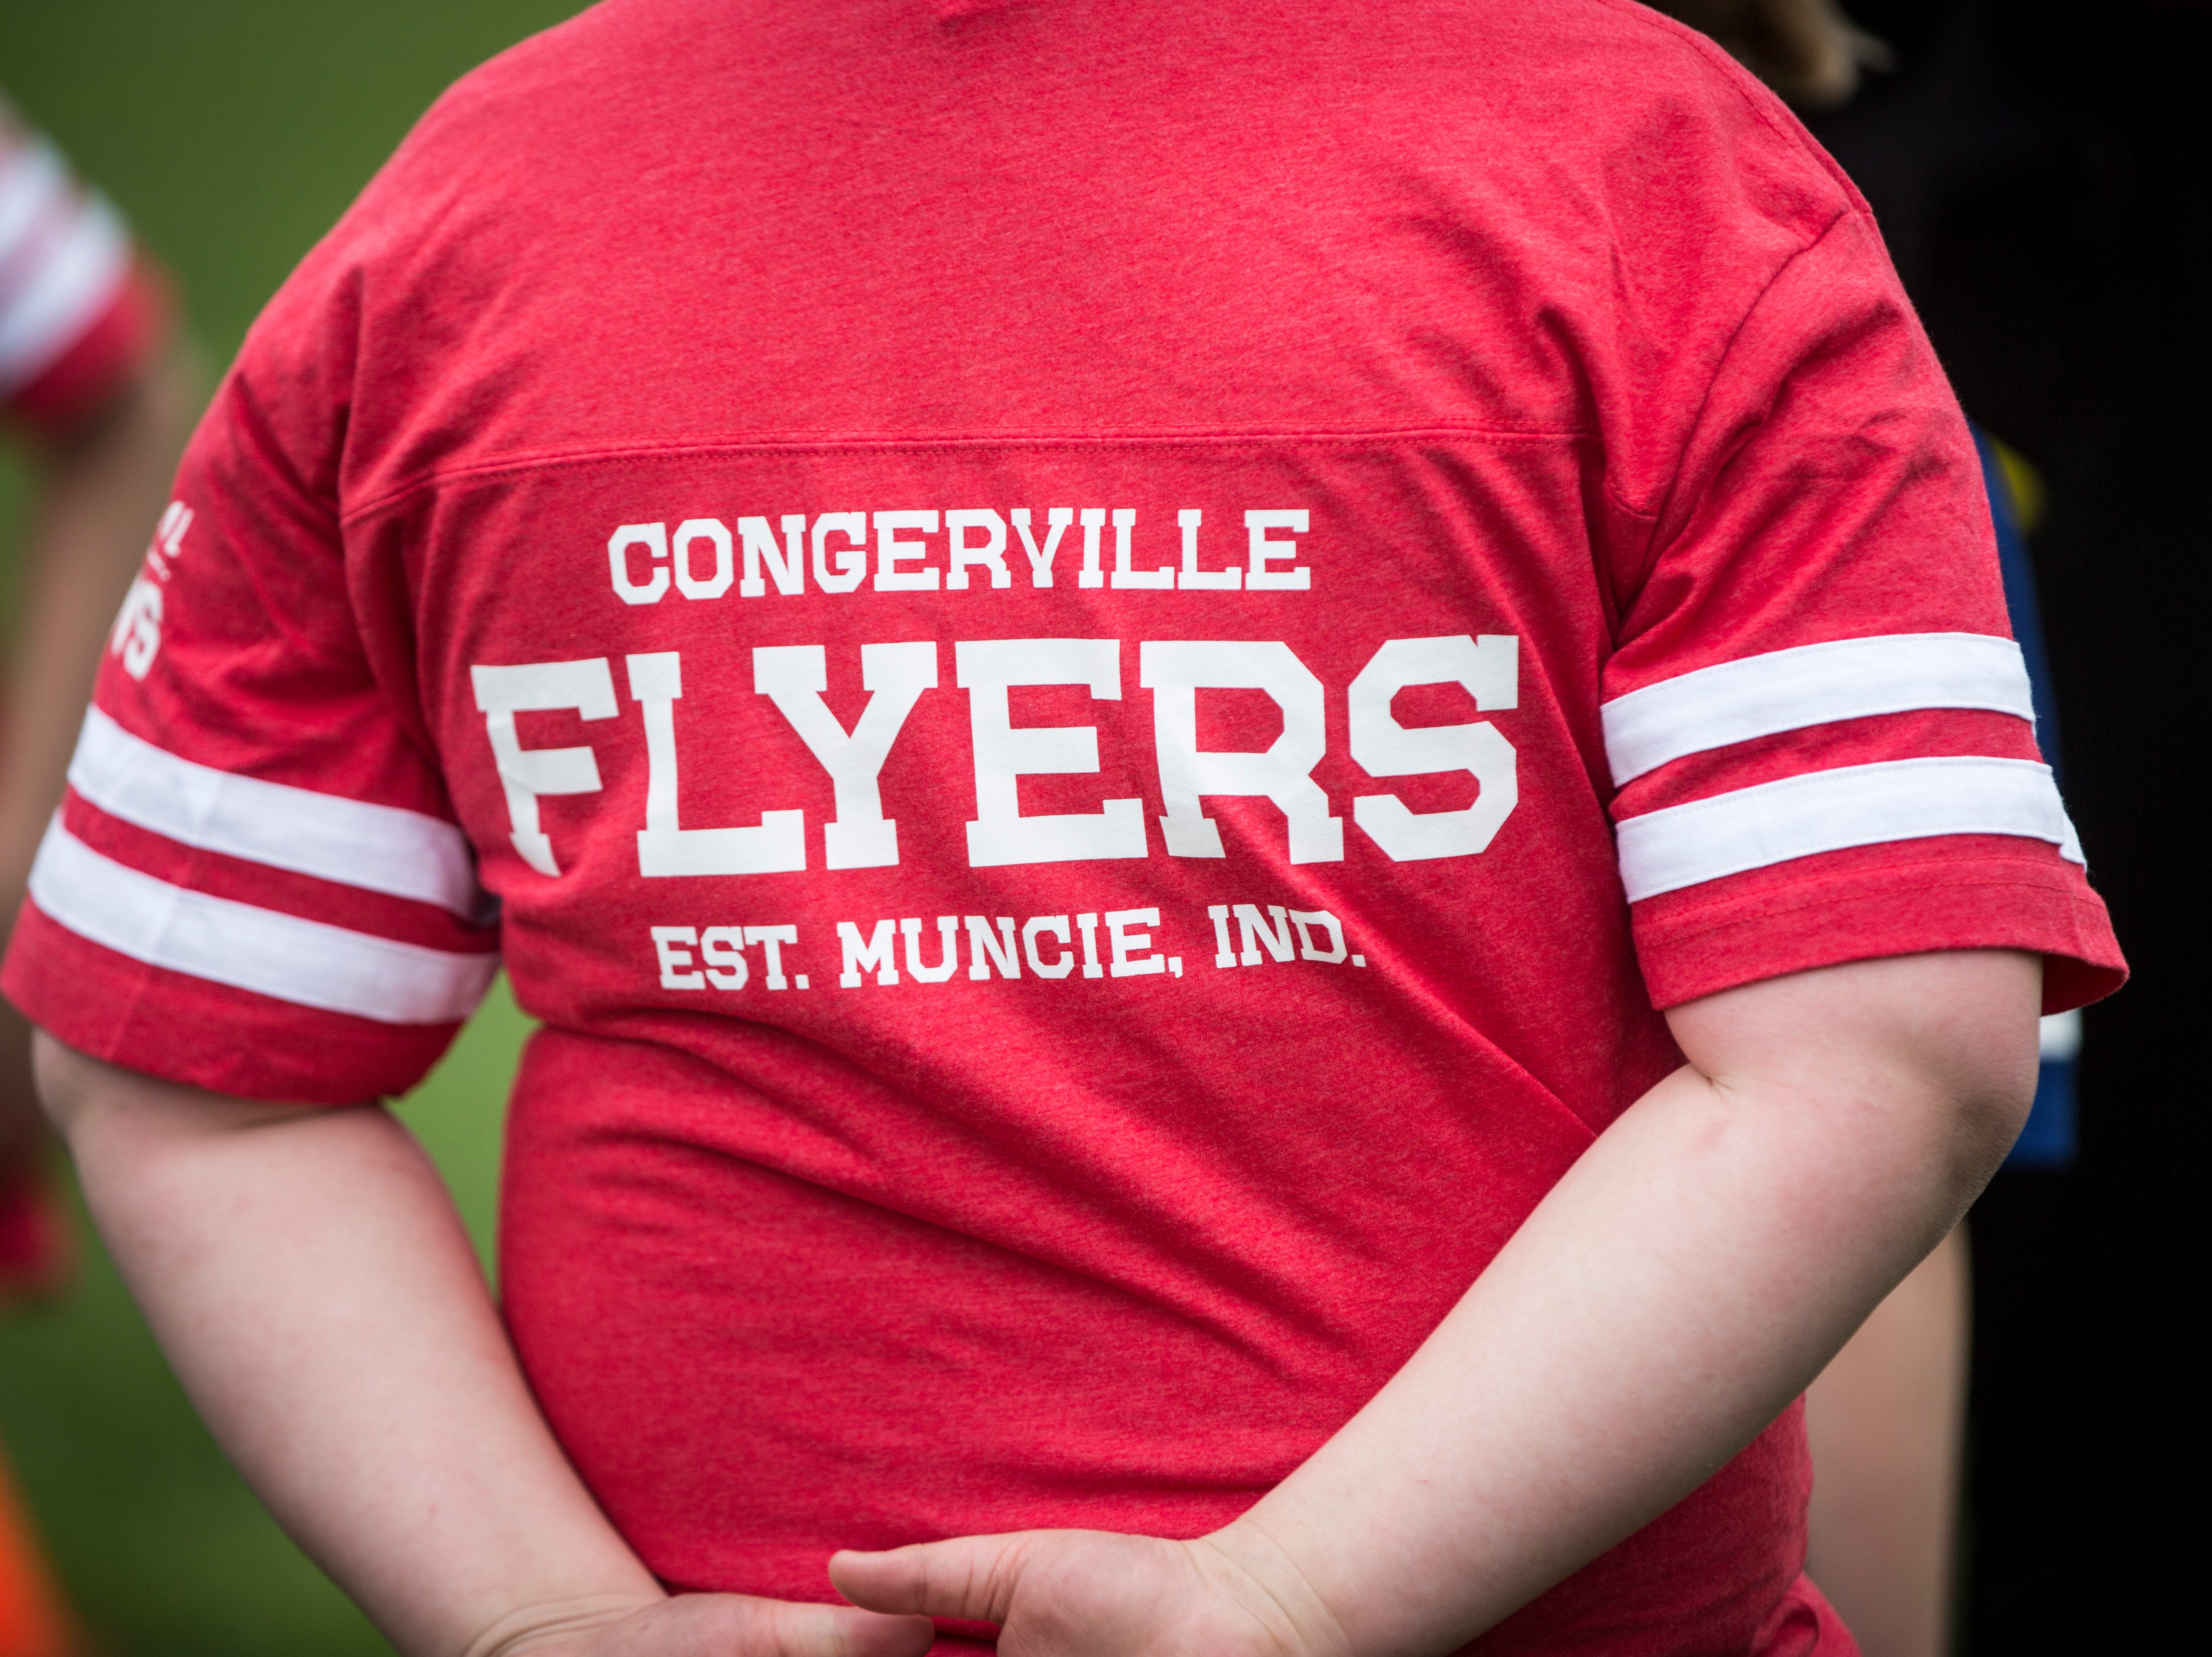 Hundreds gather downtown on April 27 during the Draft Day Tailgate event at Canan Commons. The celebration with the Colts honored Muncie as the home of one of the original teams of the NFL, the Congerville Flyers.